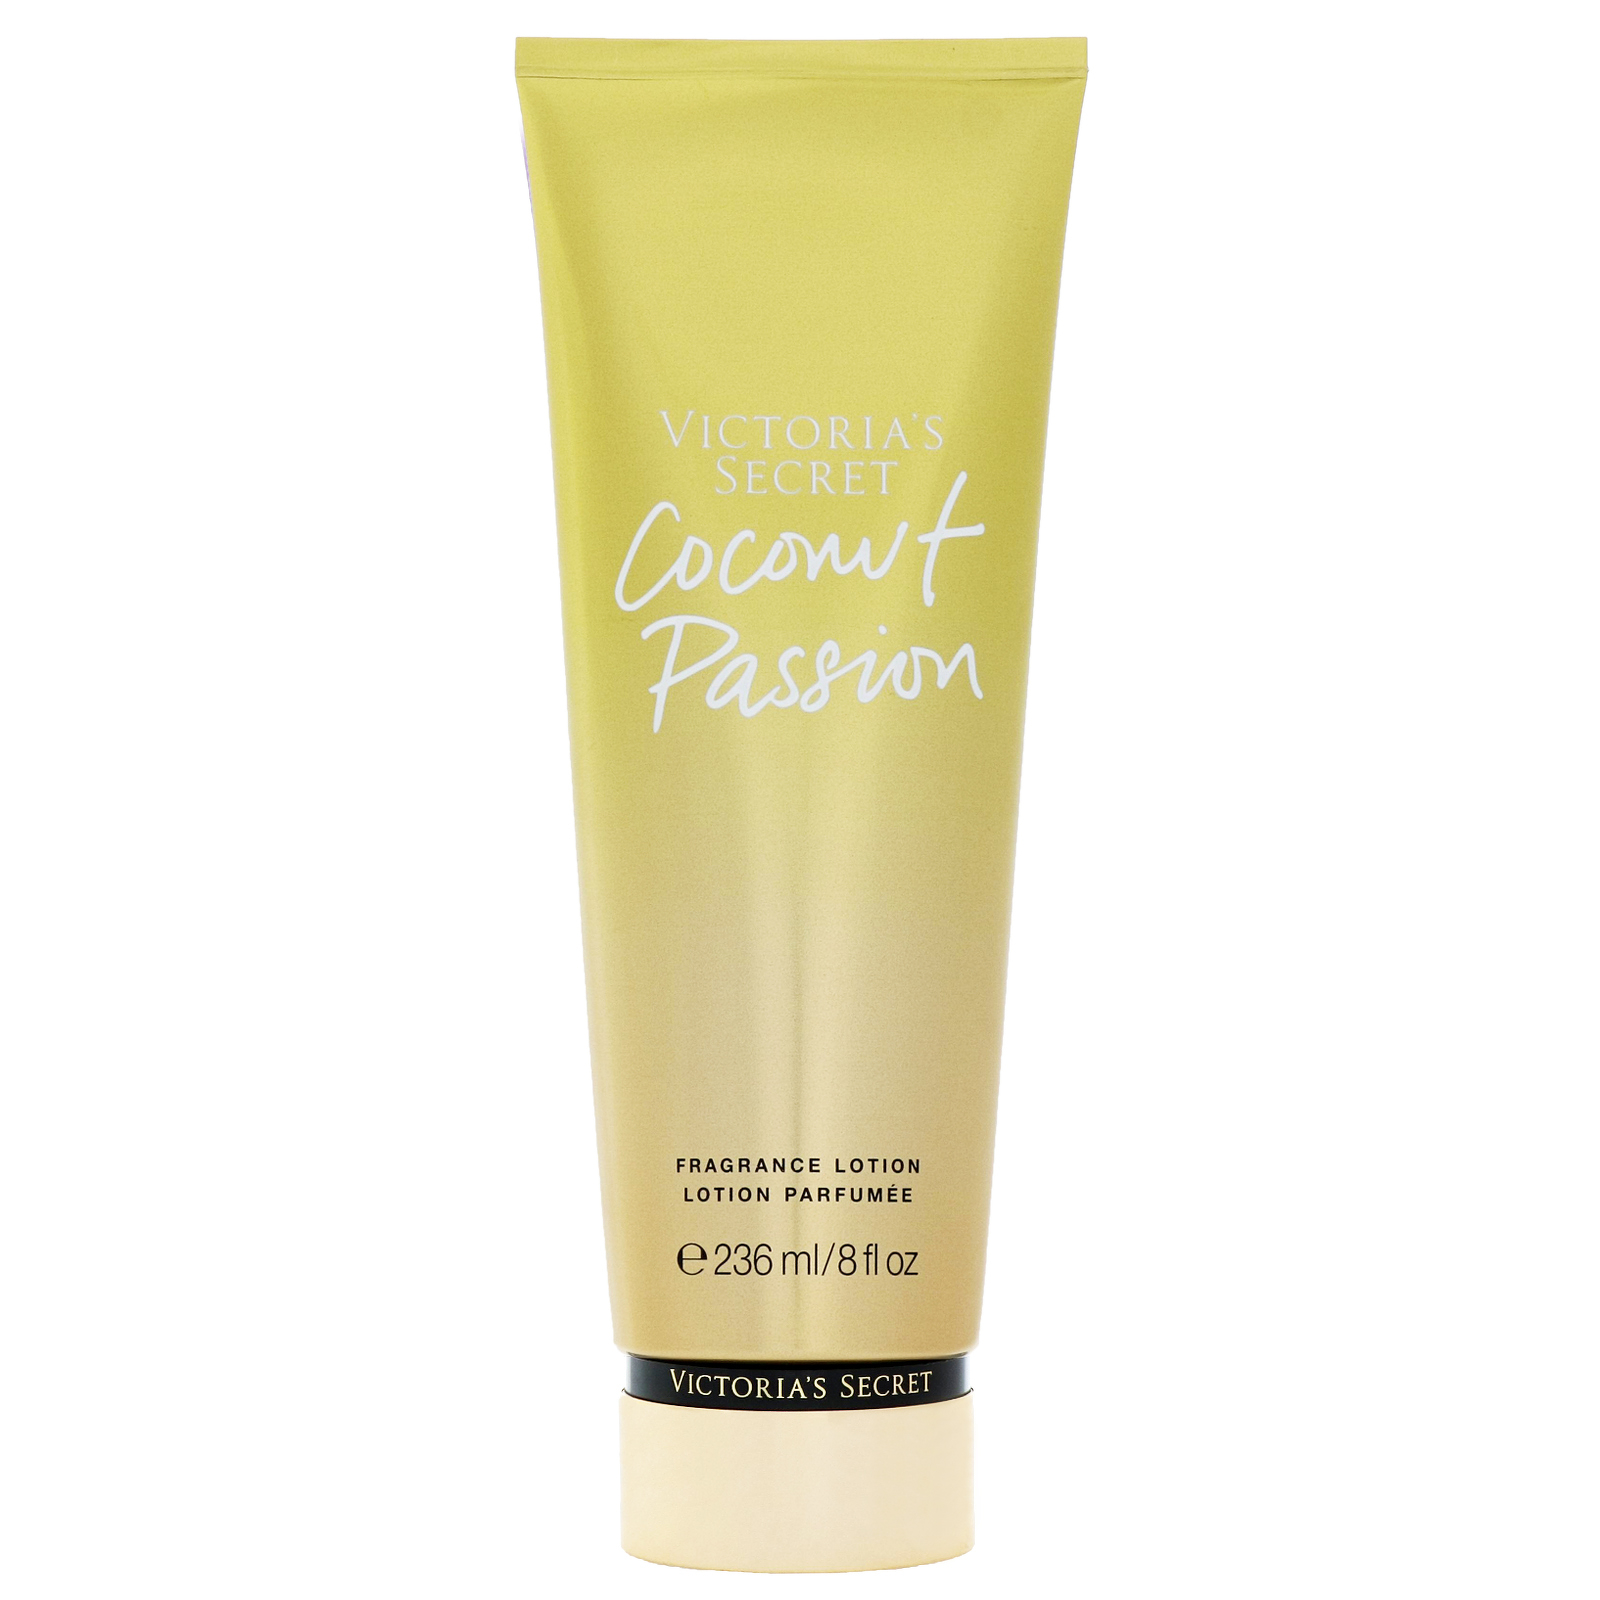 Victoria's Secret Coconut Passion Fragrance Lotion 236ml